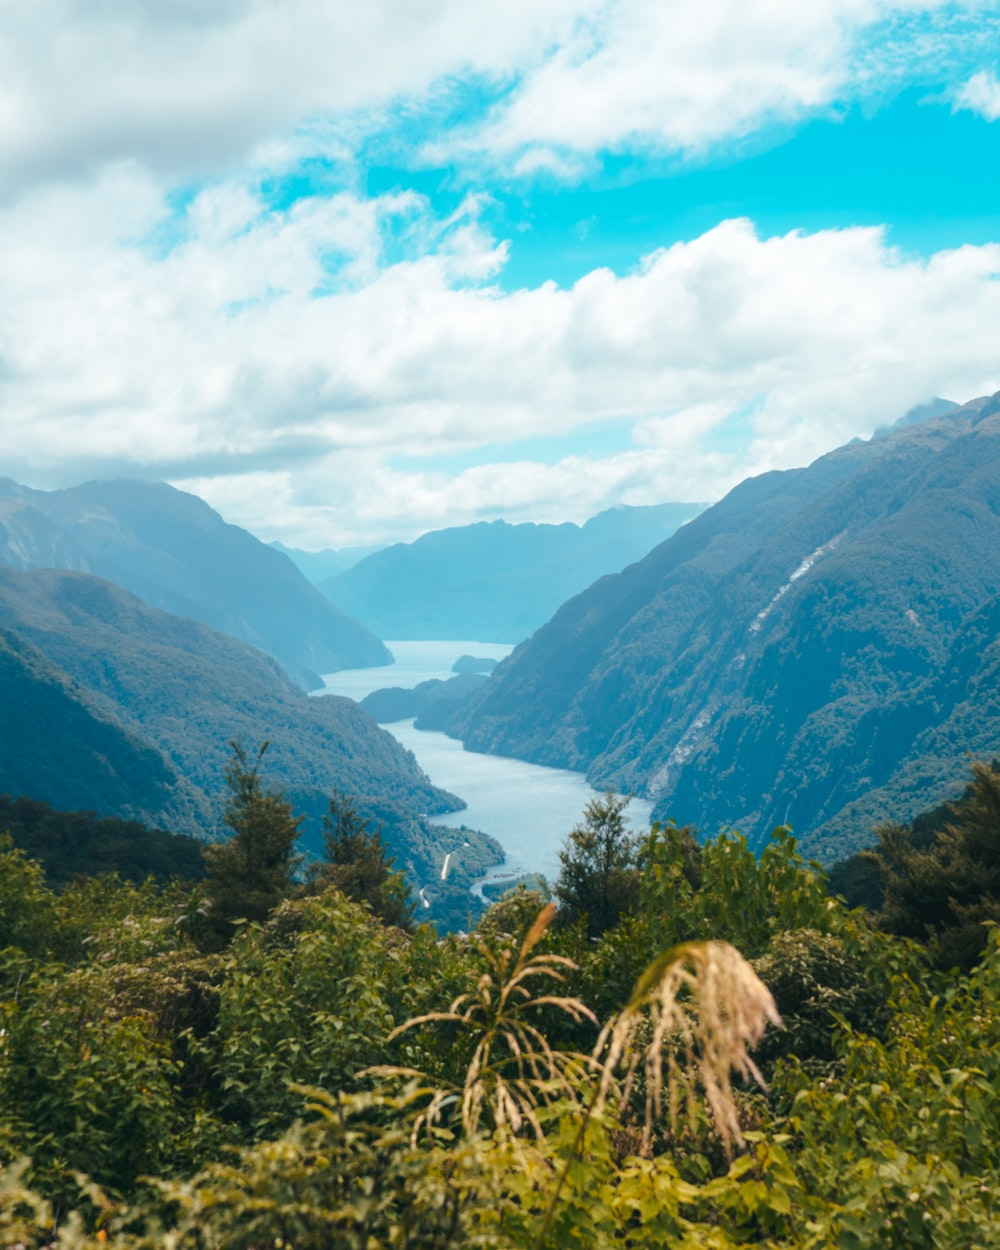 body of water between mountains with trees during daytime